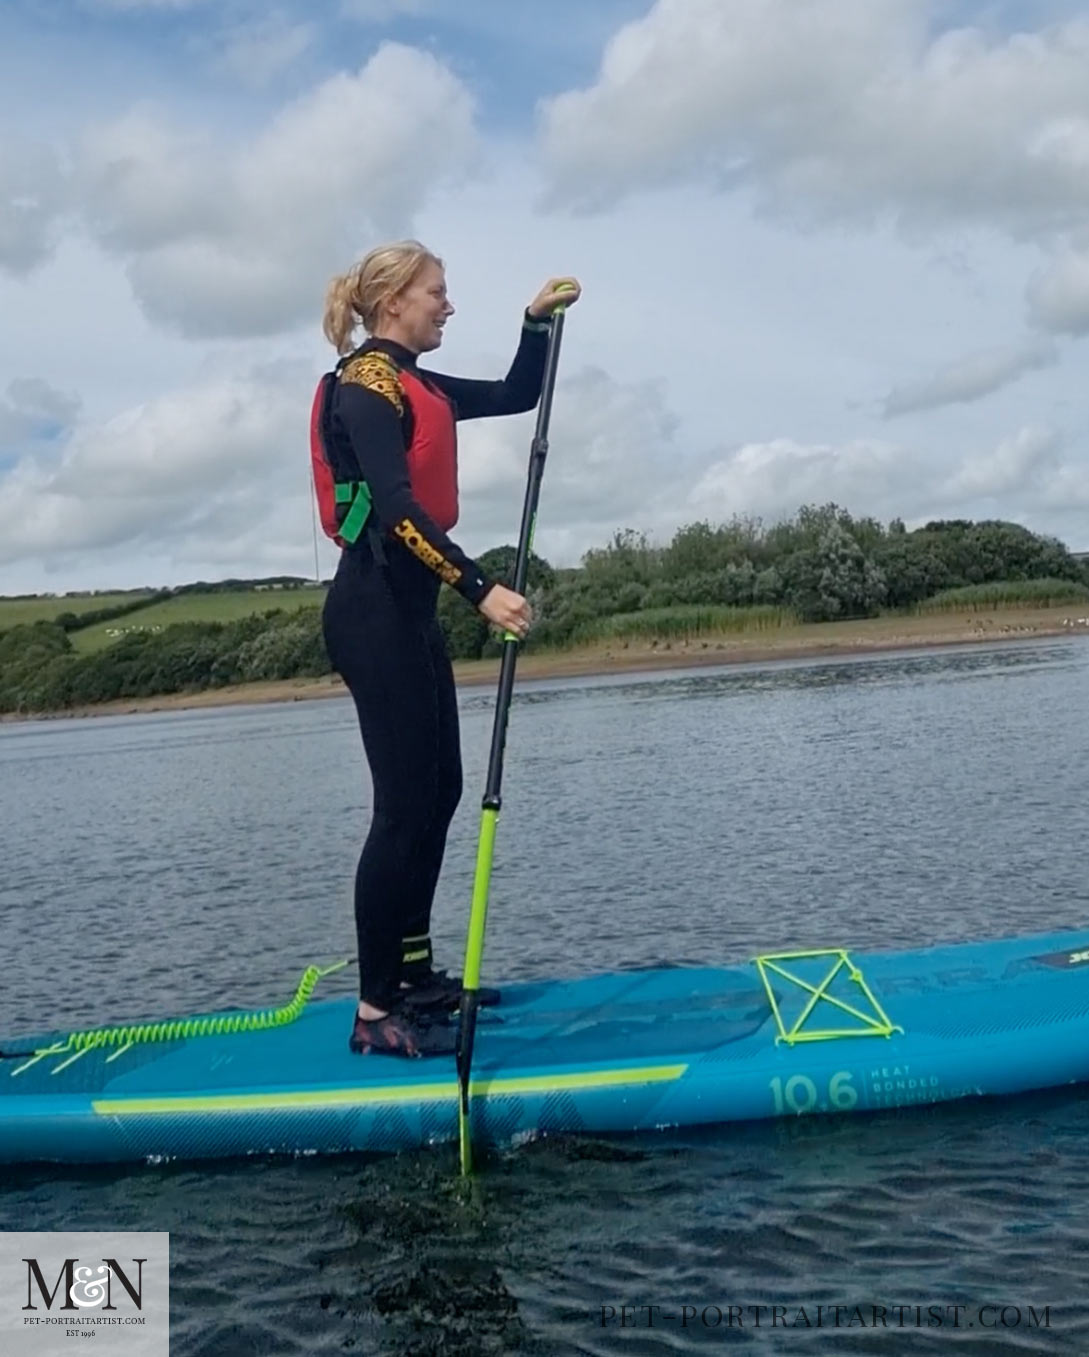 Melanie standing on a paddle board!